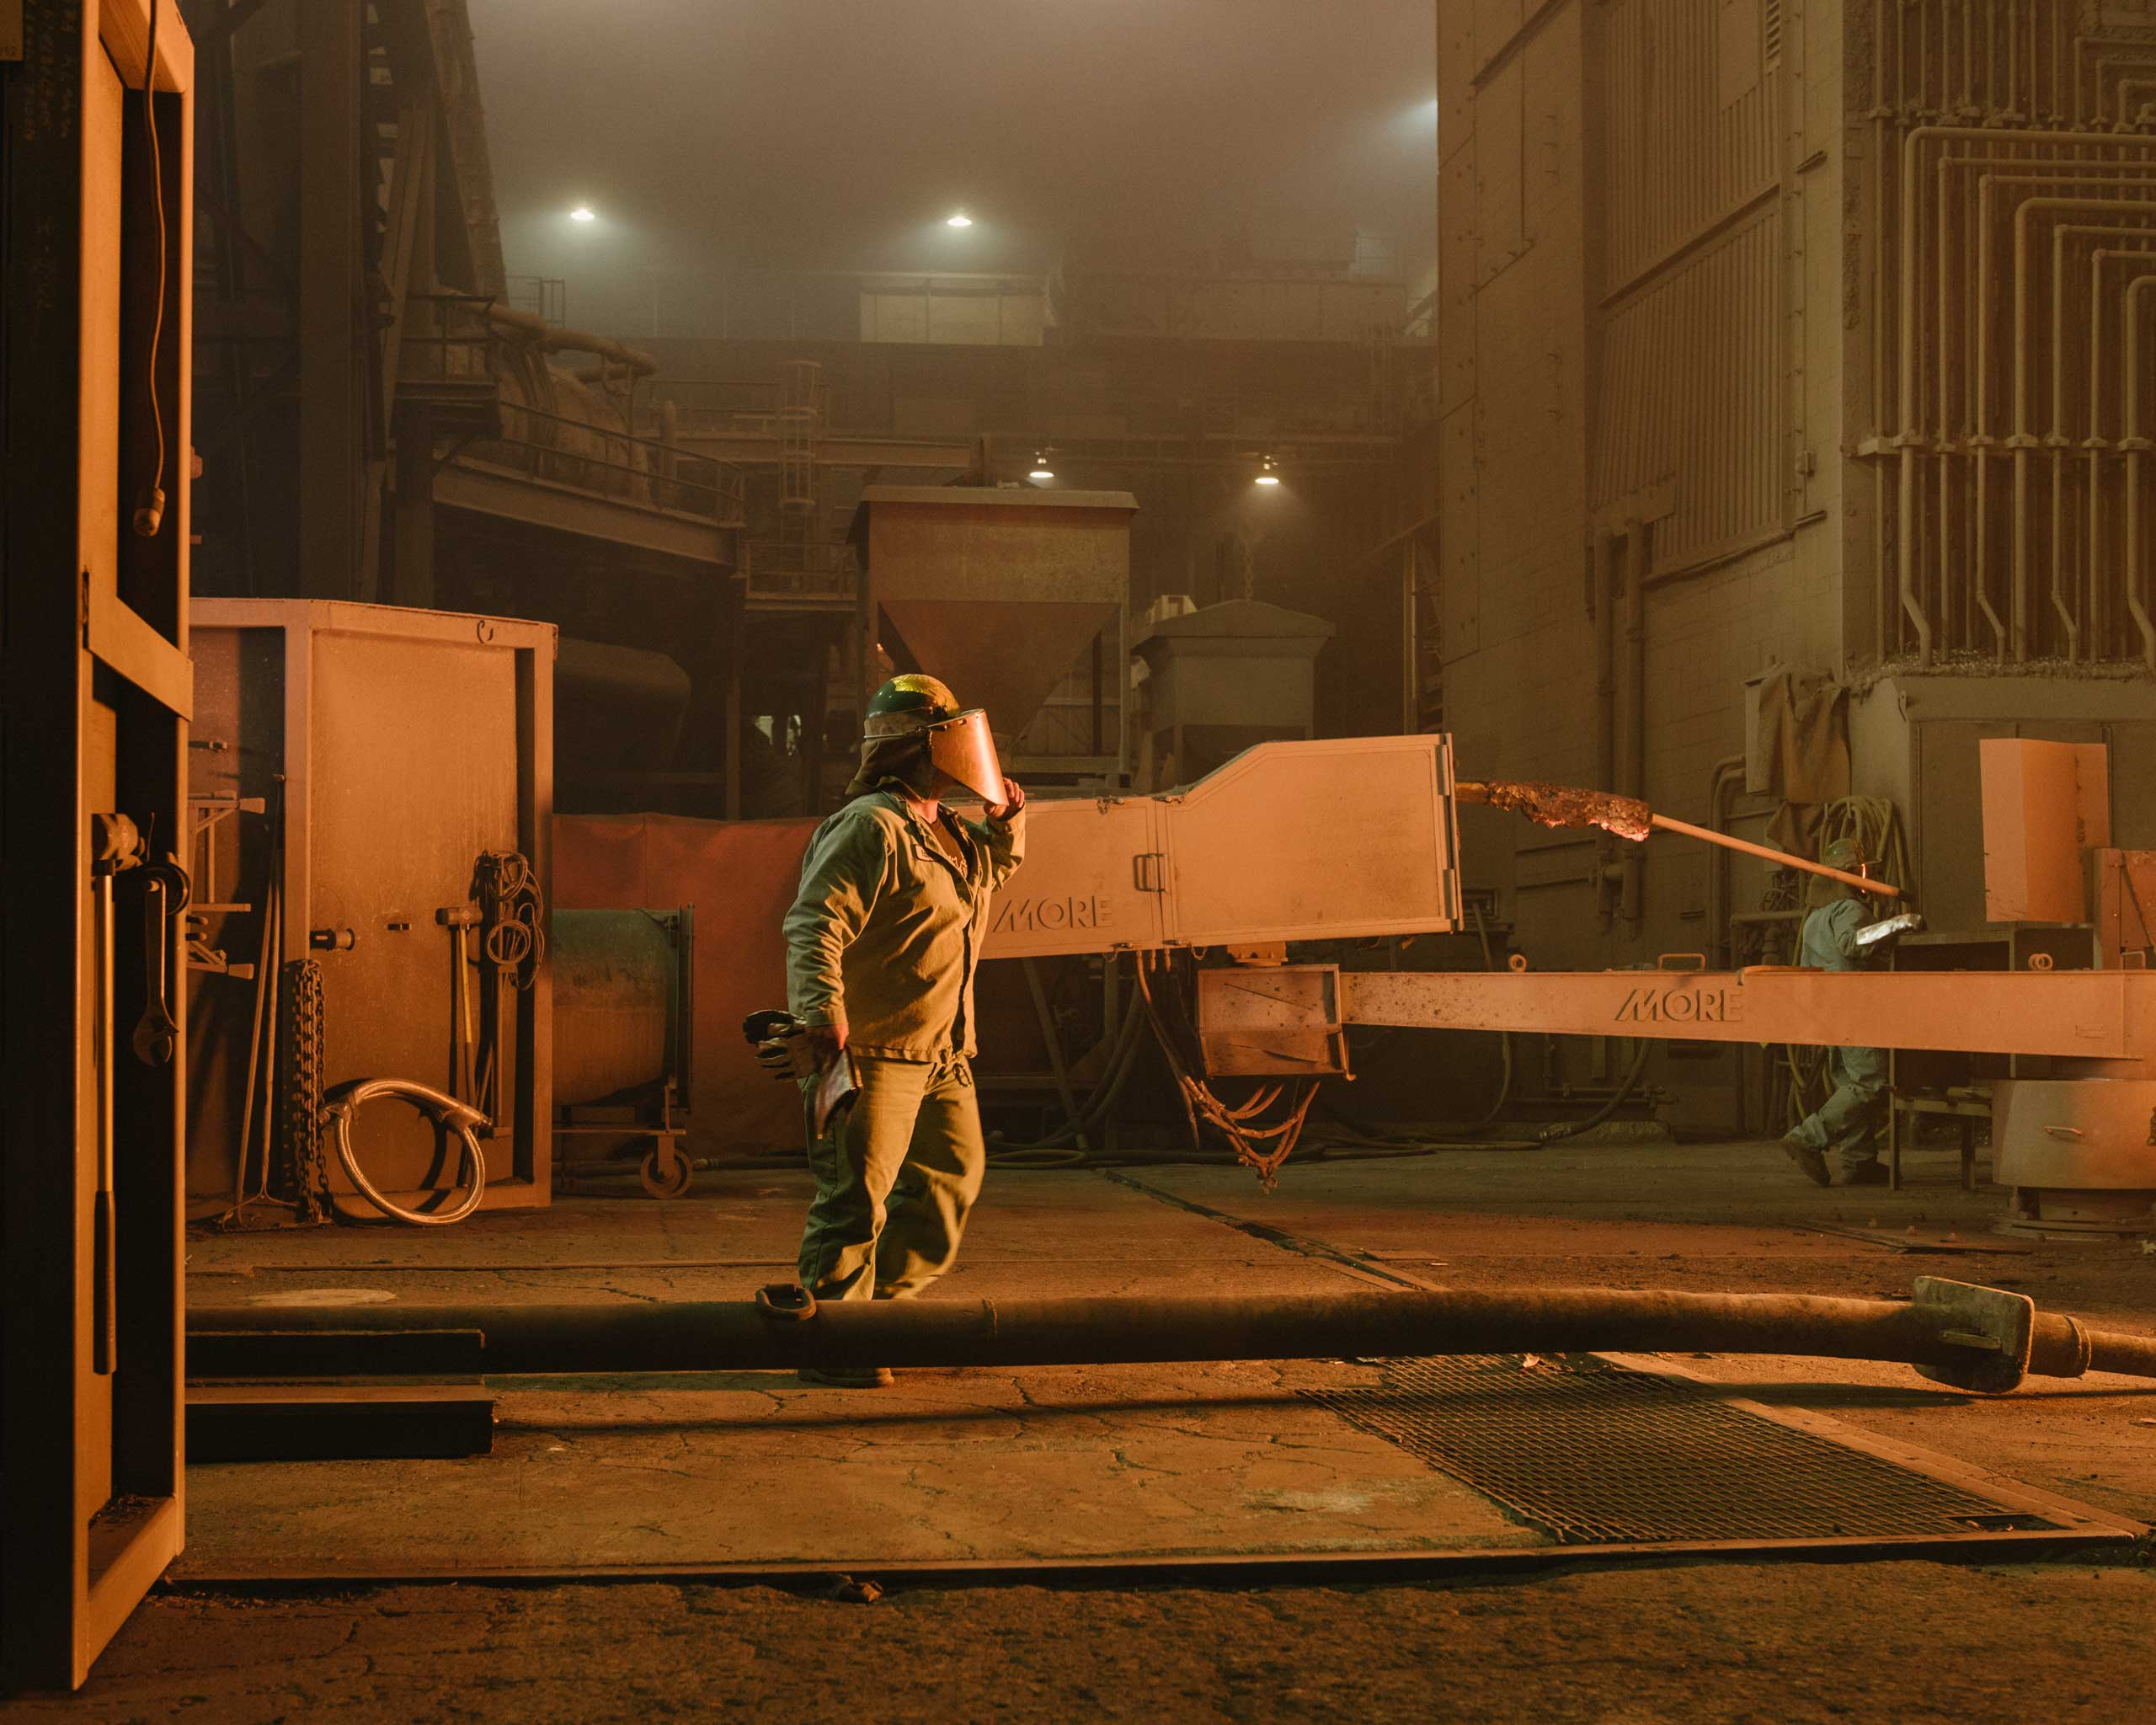 A worker approaches the electric-arc furnace, which uses three giant                     electrodes to melt scrap into molten steel. Nucor's workers are among the                     highest-paid in the industry, Crawfordsville, Ind. on Aug. 25, 2014.